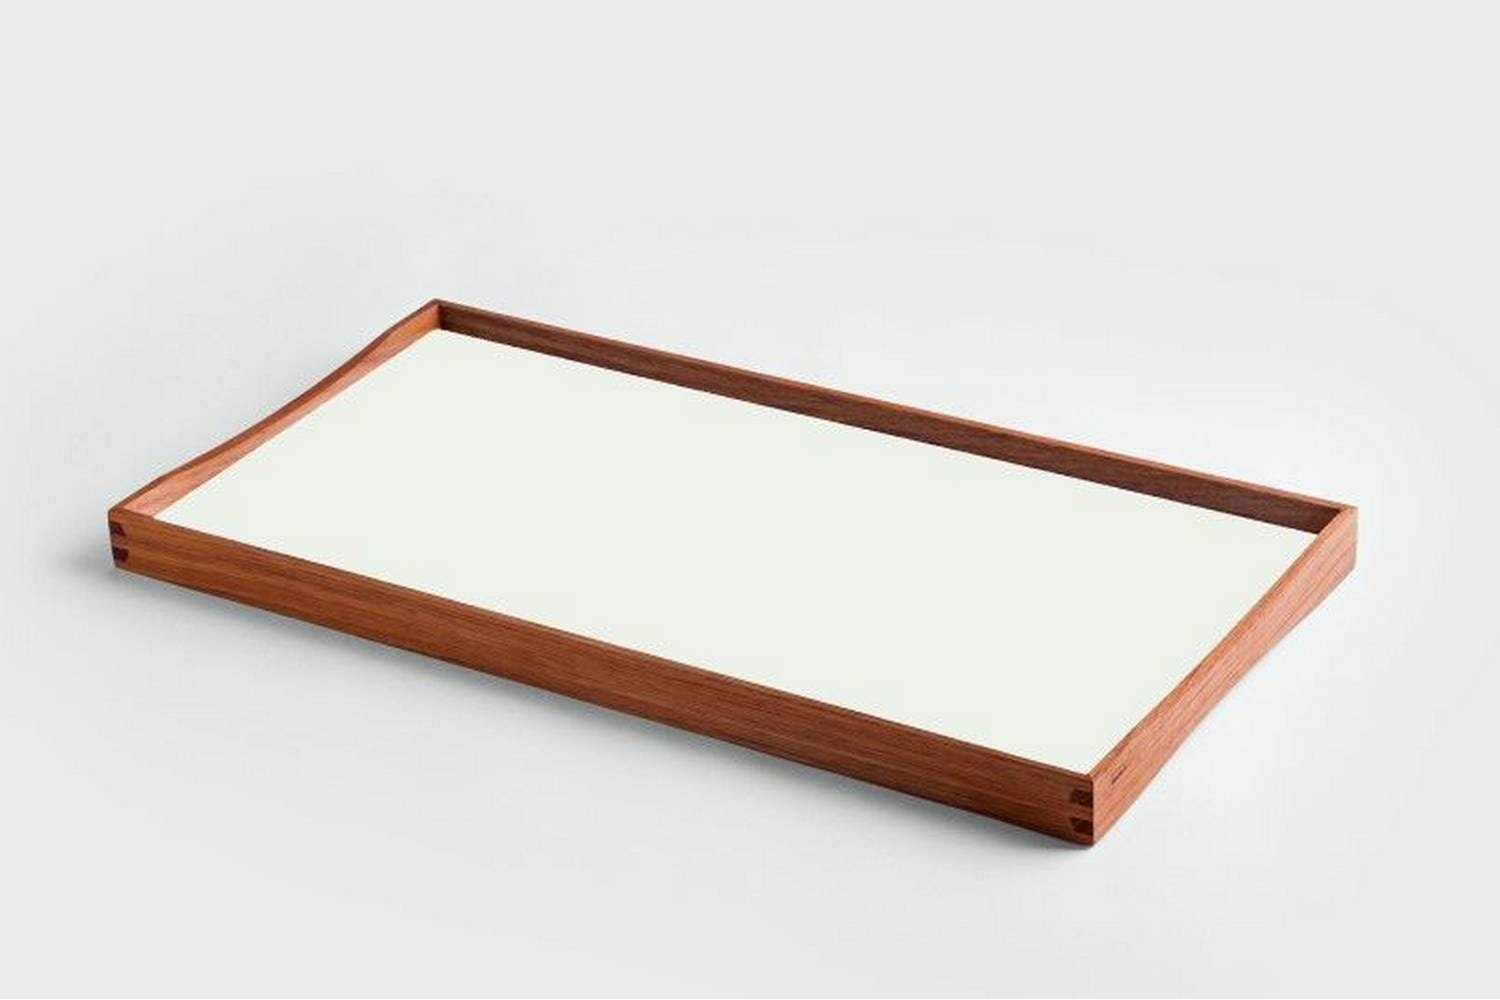 Turning Tray 1 by Finn Juhl for Architectmade